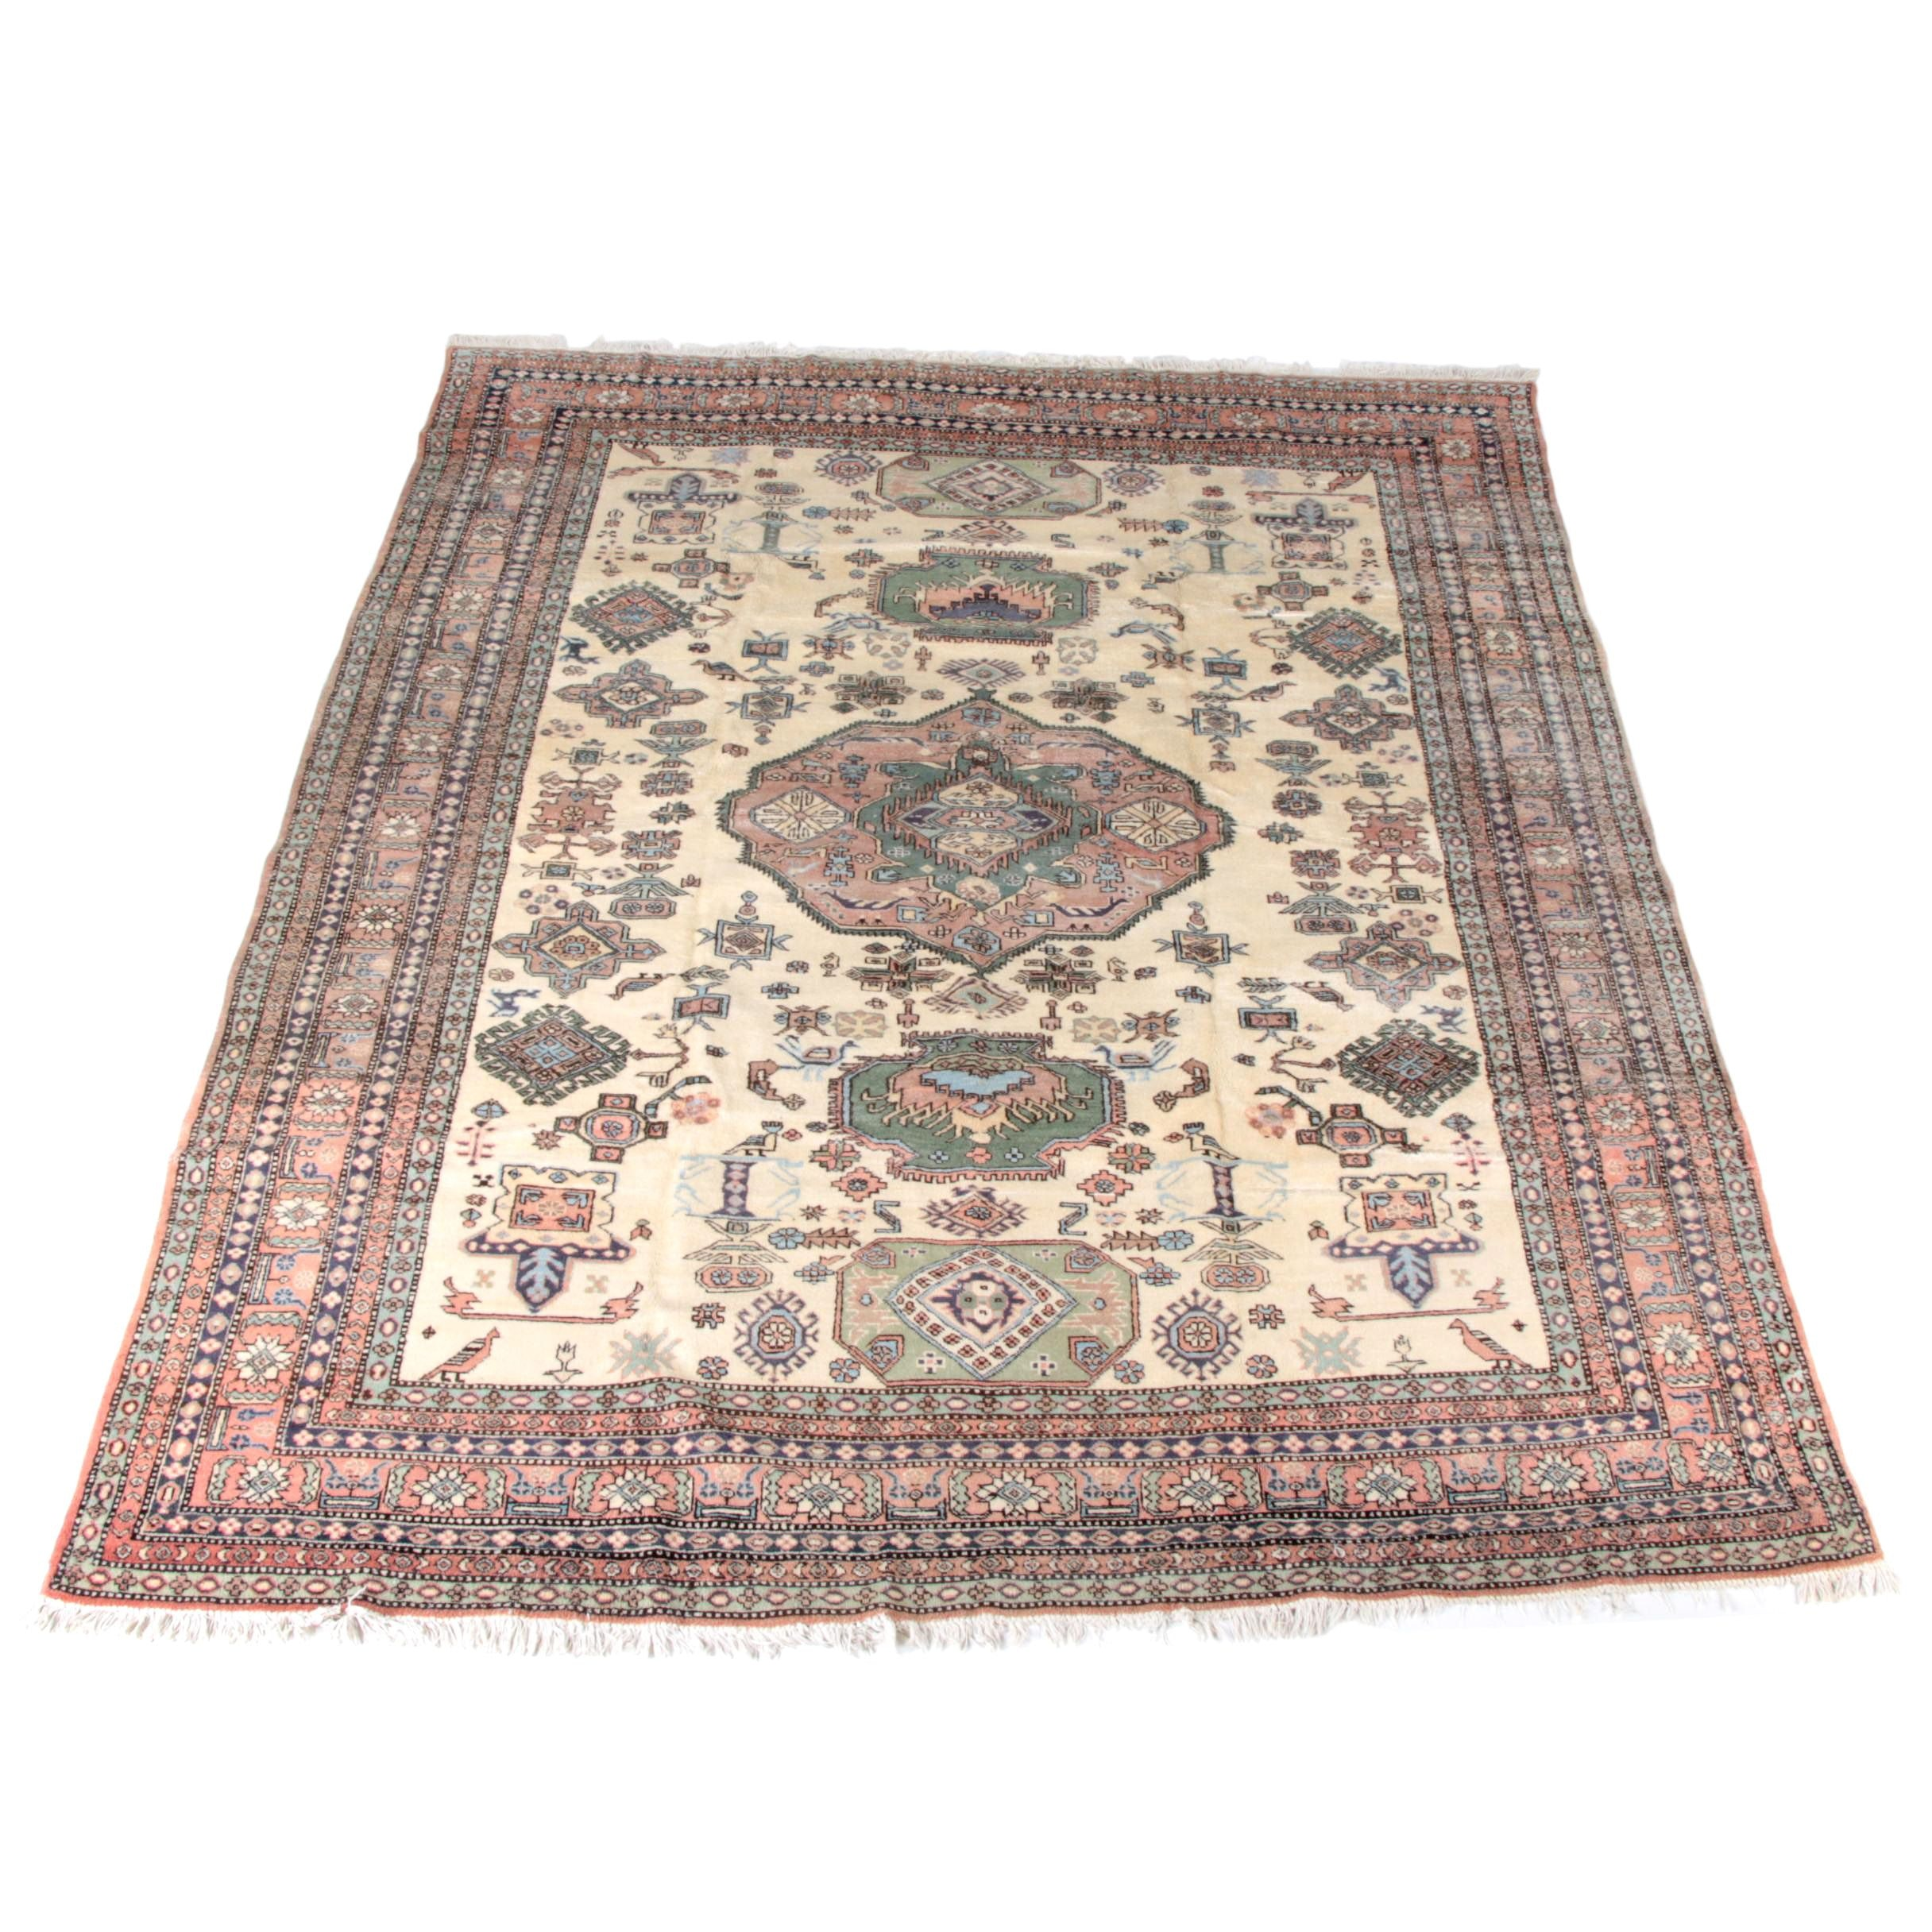 Large Hand-Knotted Central Asian Area Rug